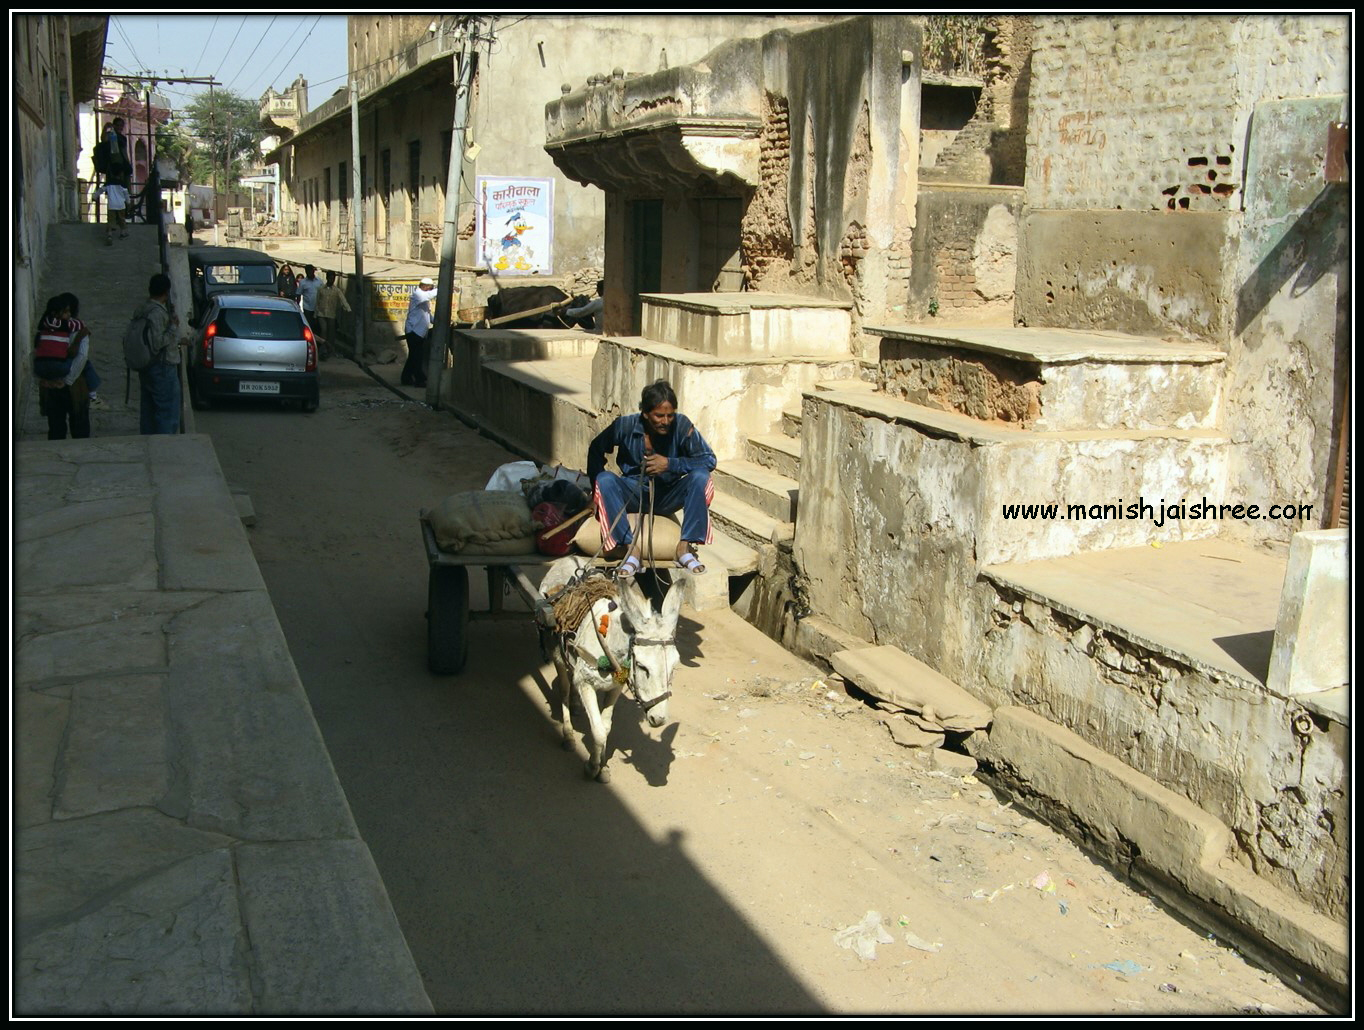 Narrow lanes and donkey carts